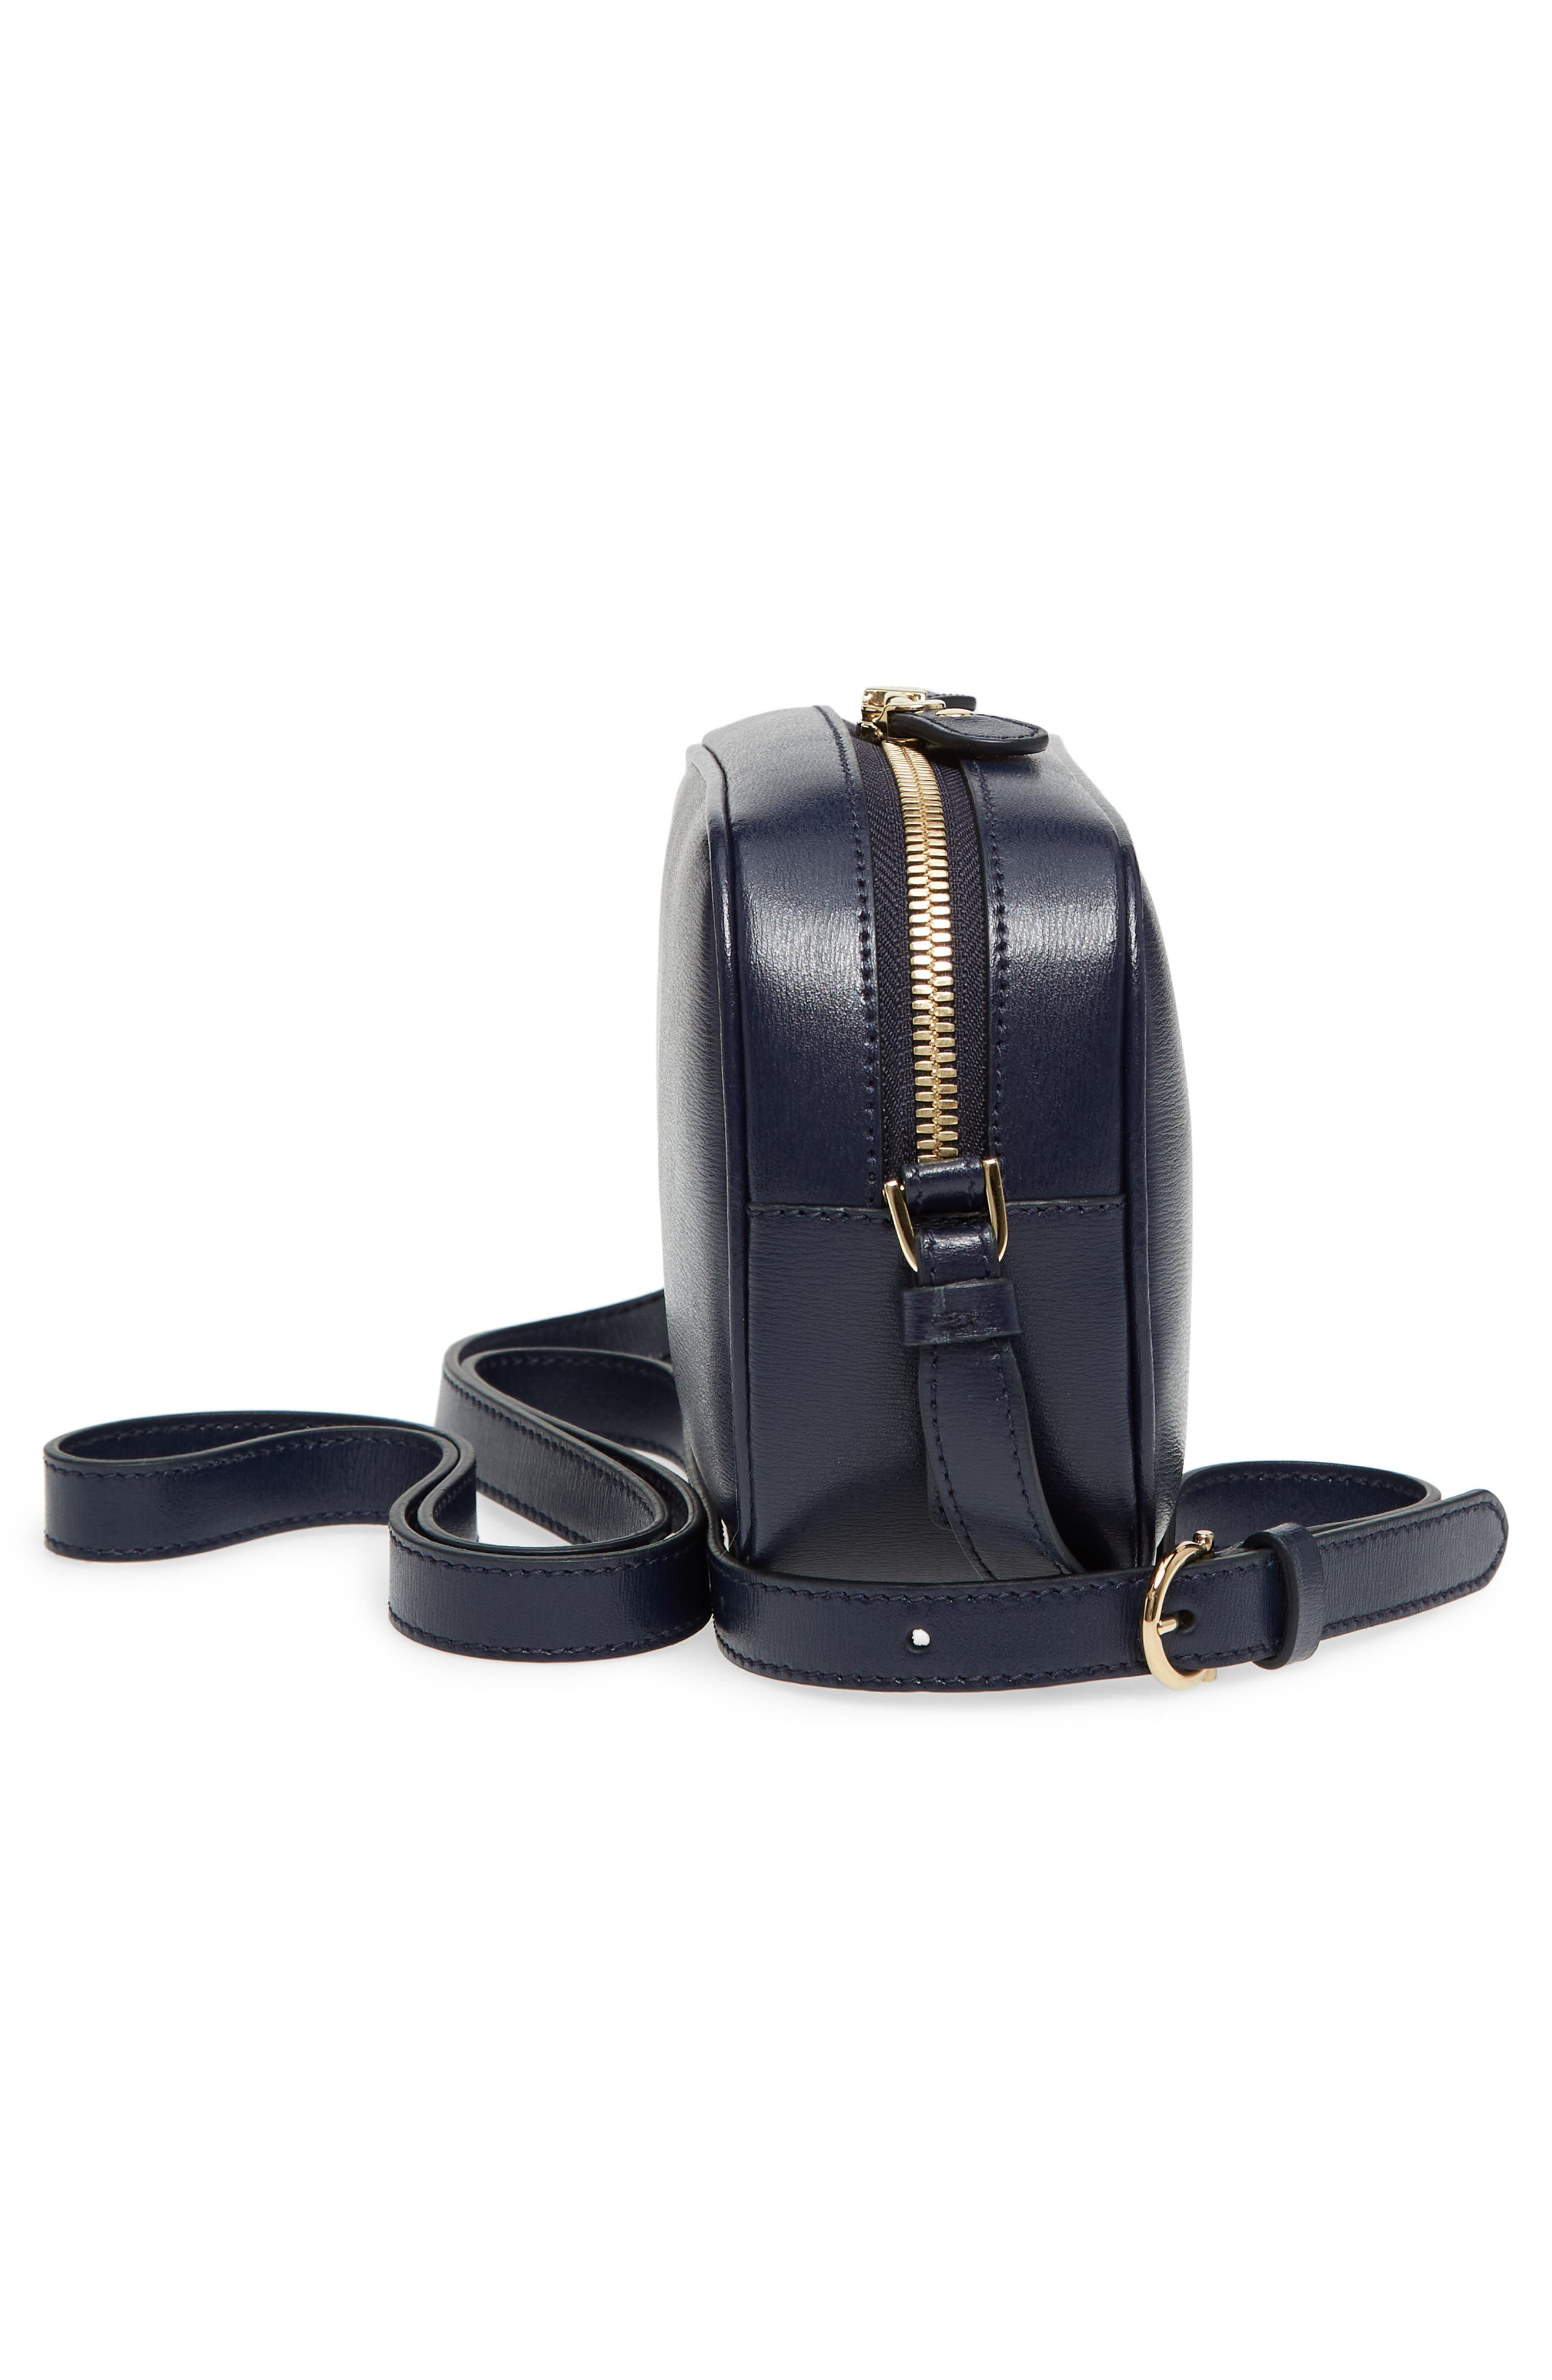 Gancio Metallic Leather Camera Bag,                             Alternate thumbnail 5, color,                             NAVY